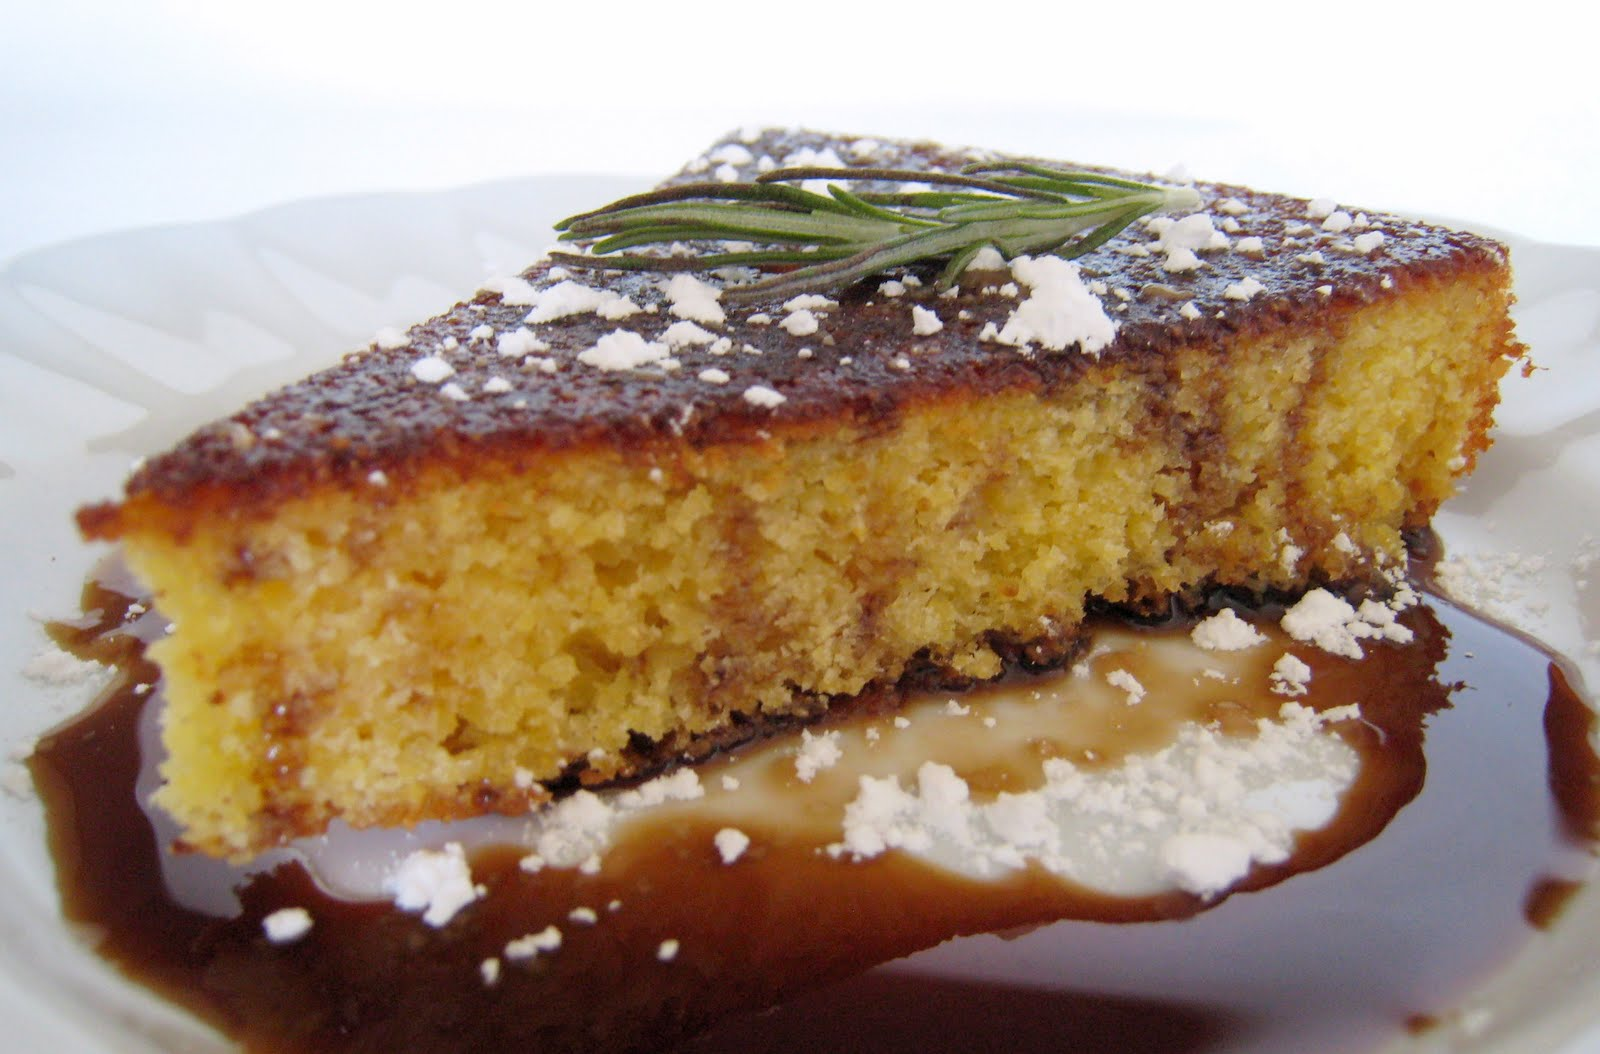 cornmeal rosemary cake with balsamic syrup